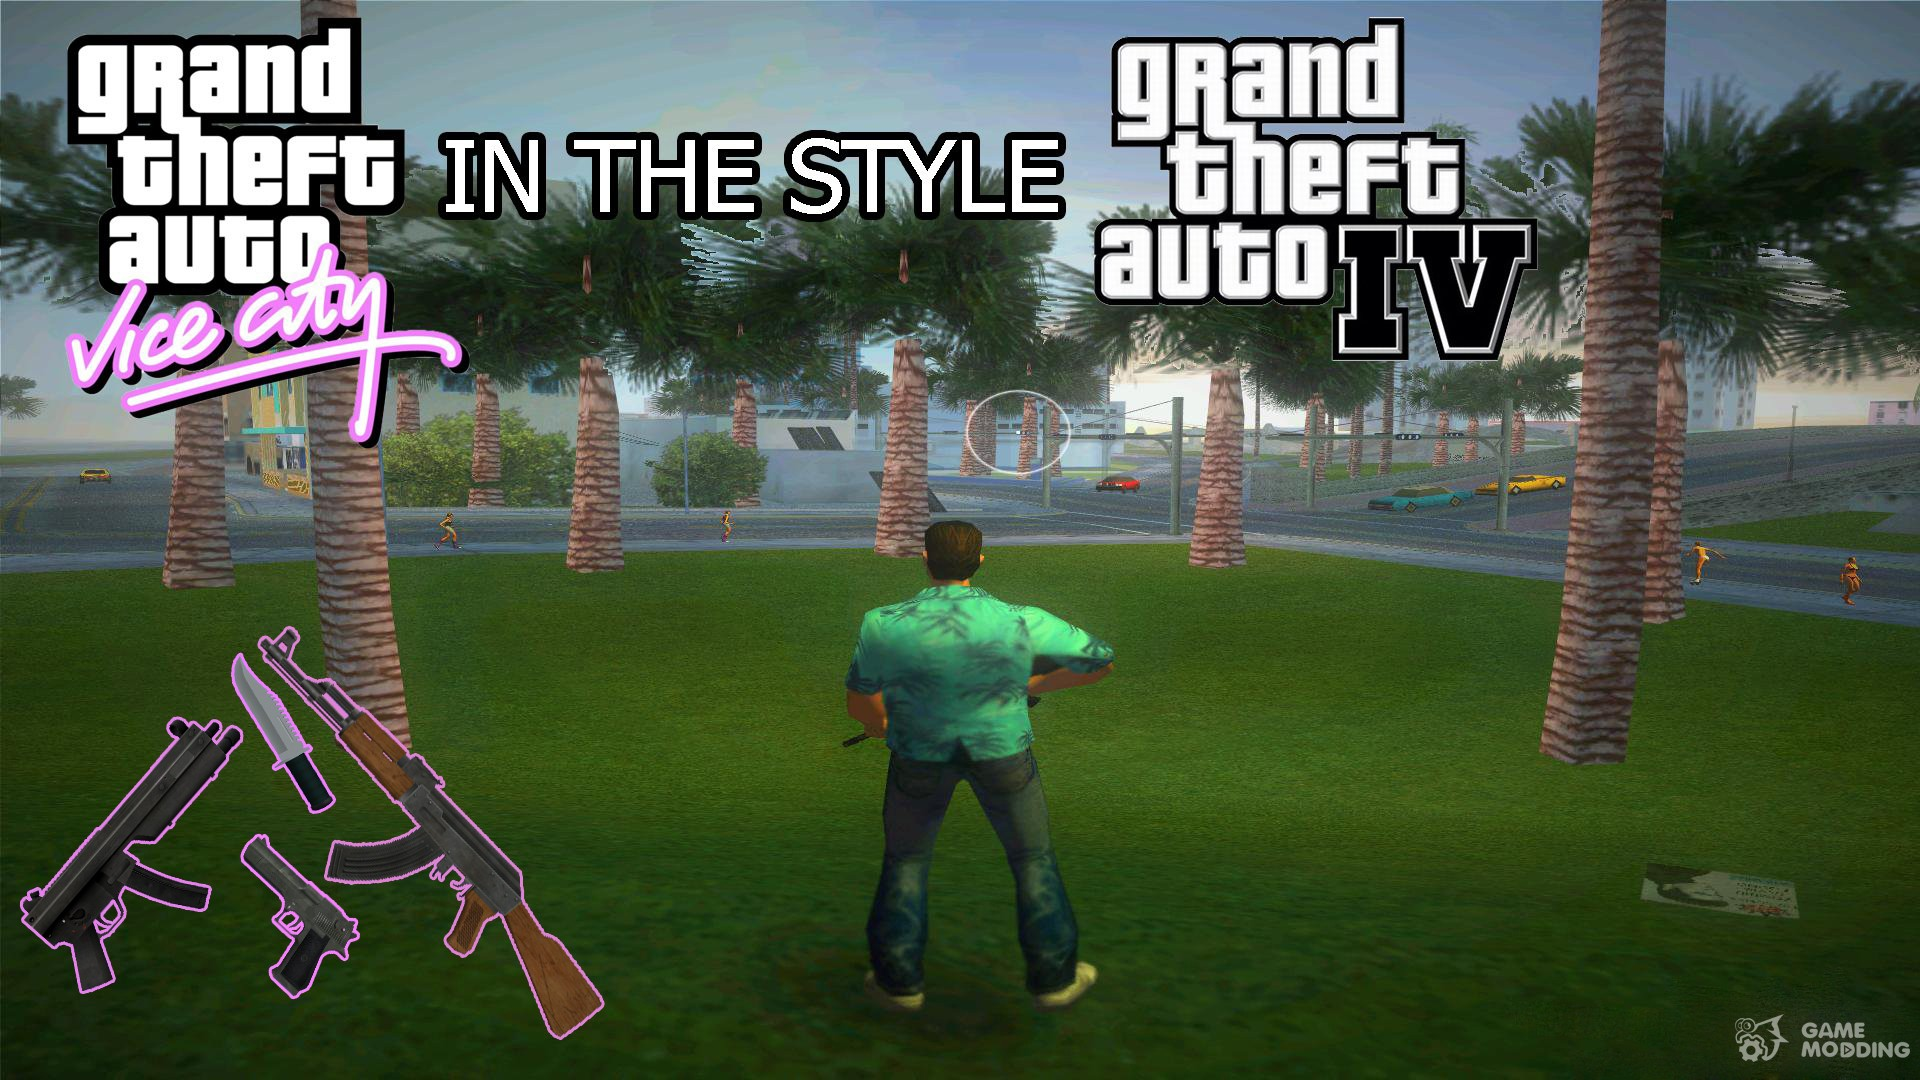 GTA 4 style for GTA Vice City